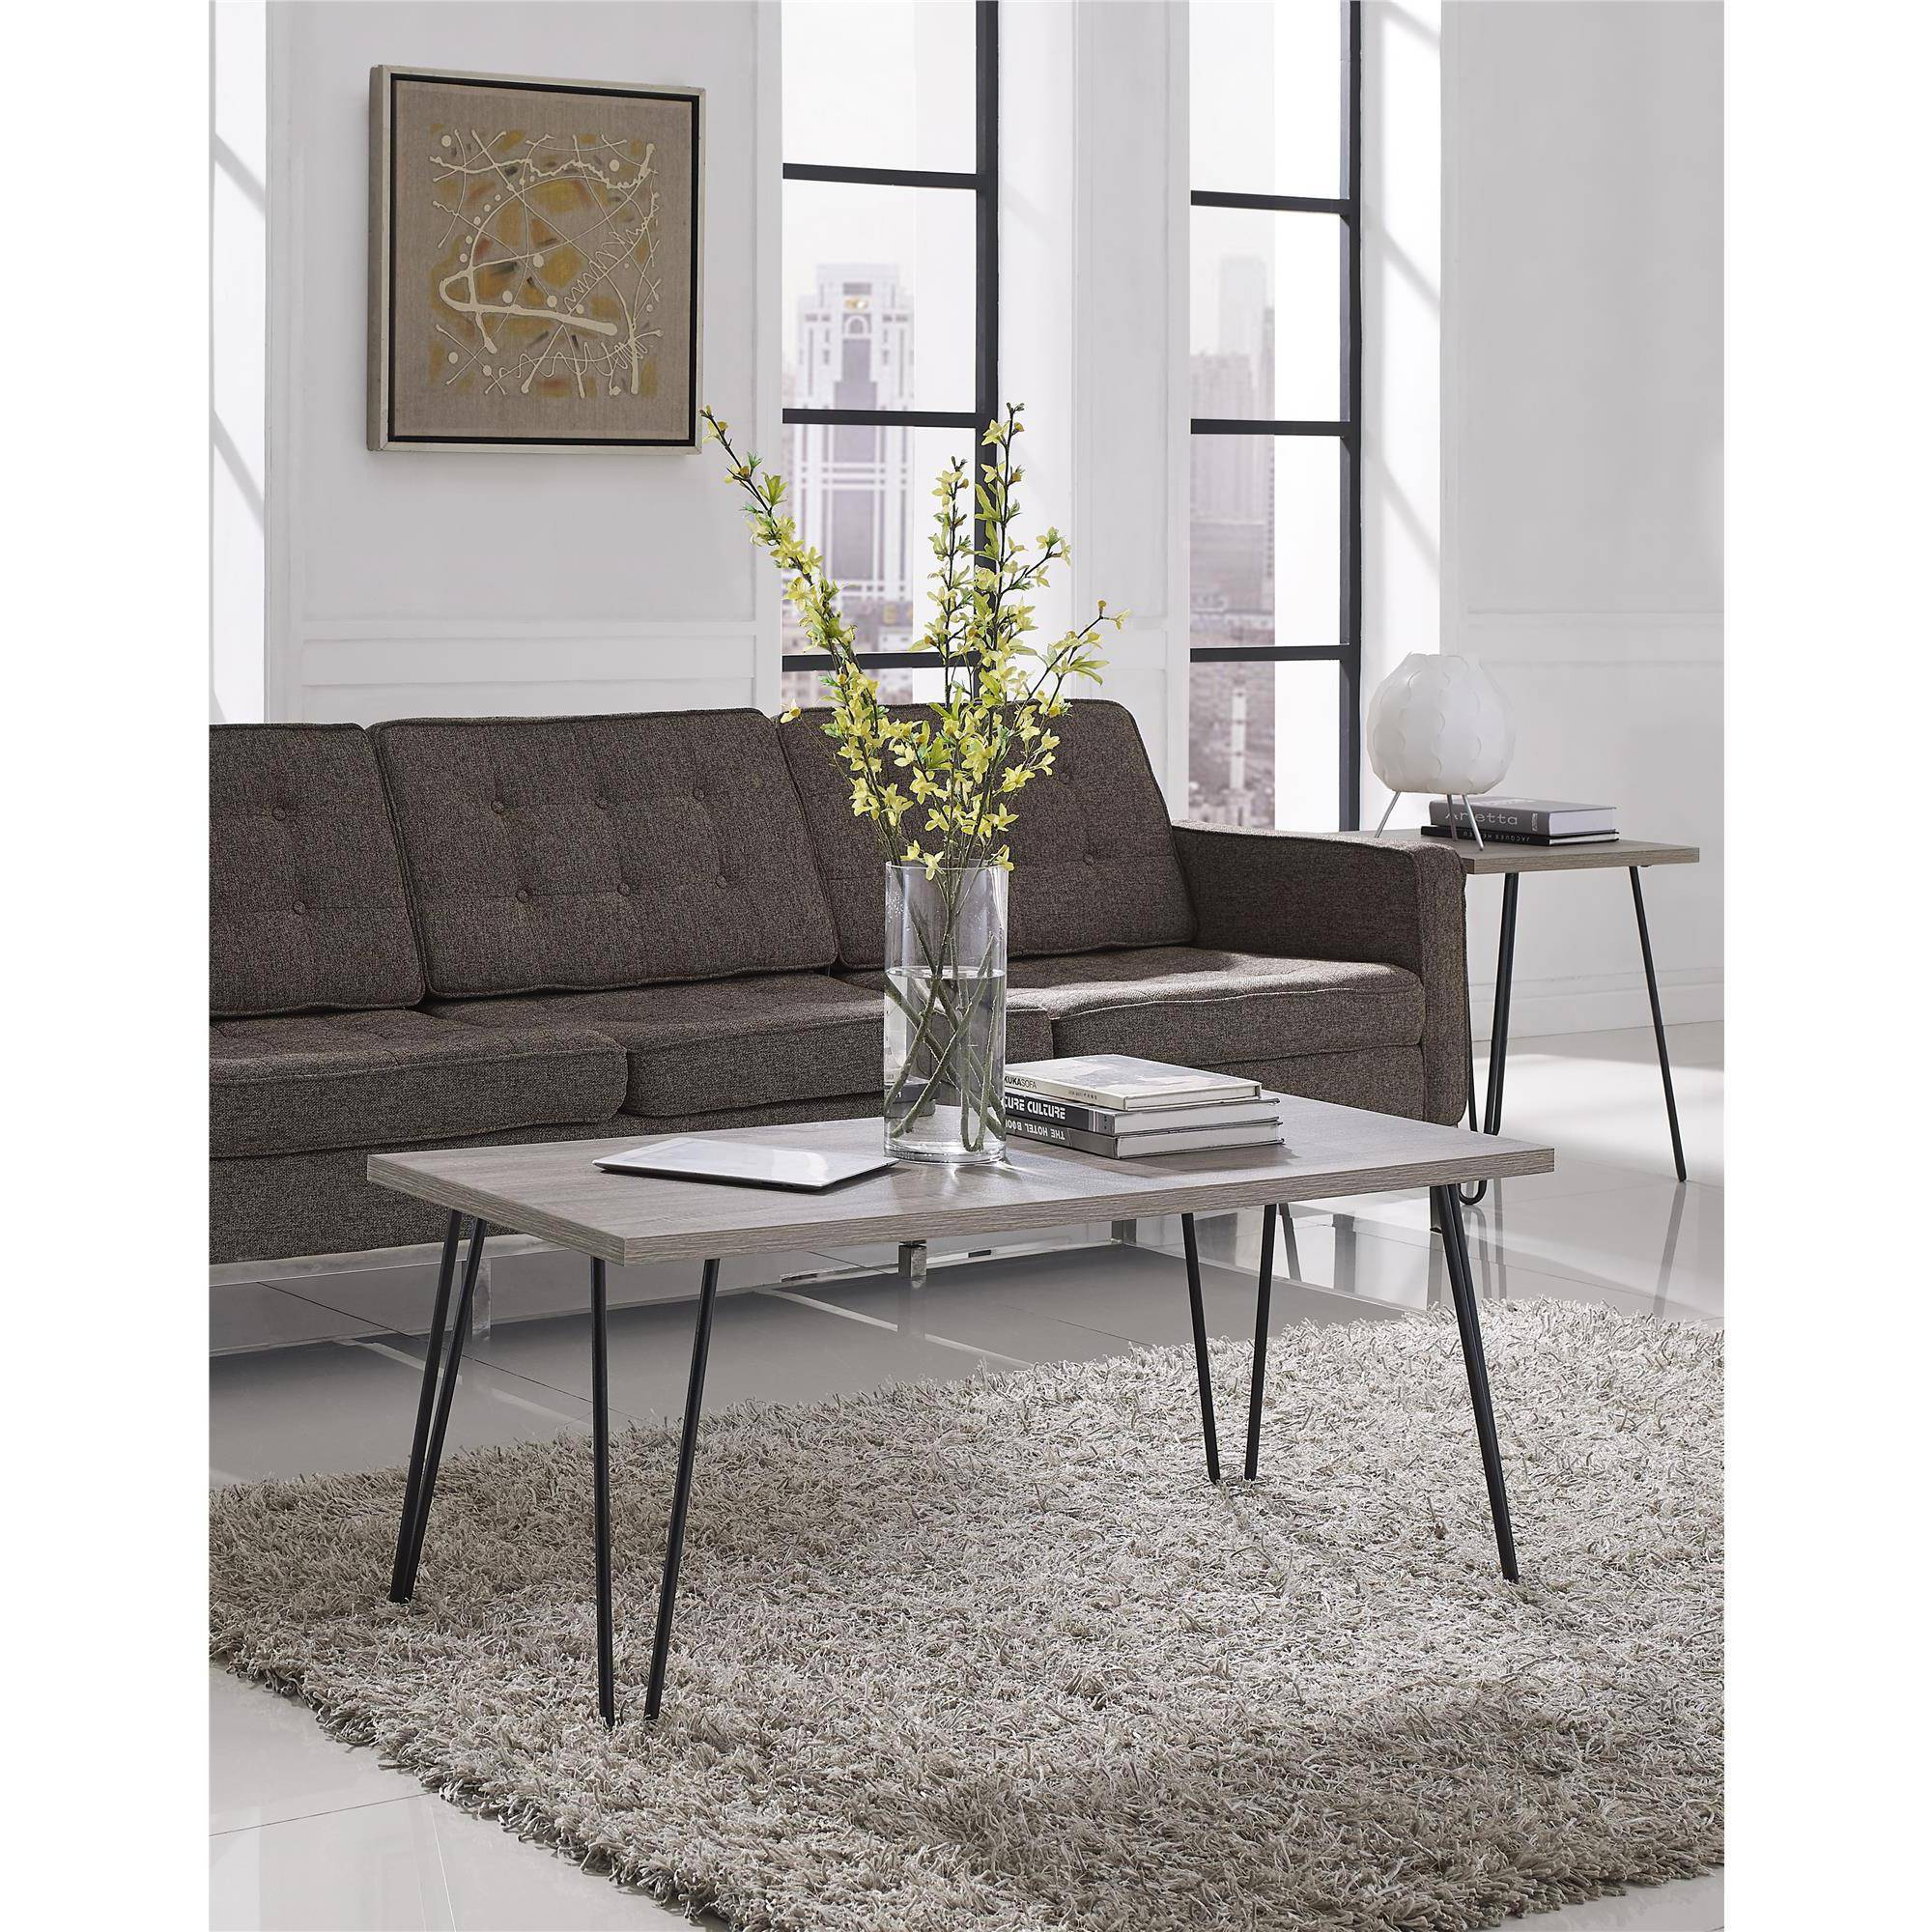 Ameriwood Home Owen Retro Coffee Table, Distressed Gray Oak Gunmetal Gray by Ameriwood Industries